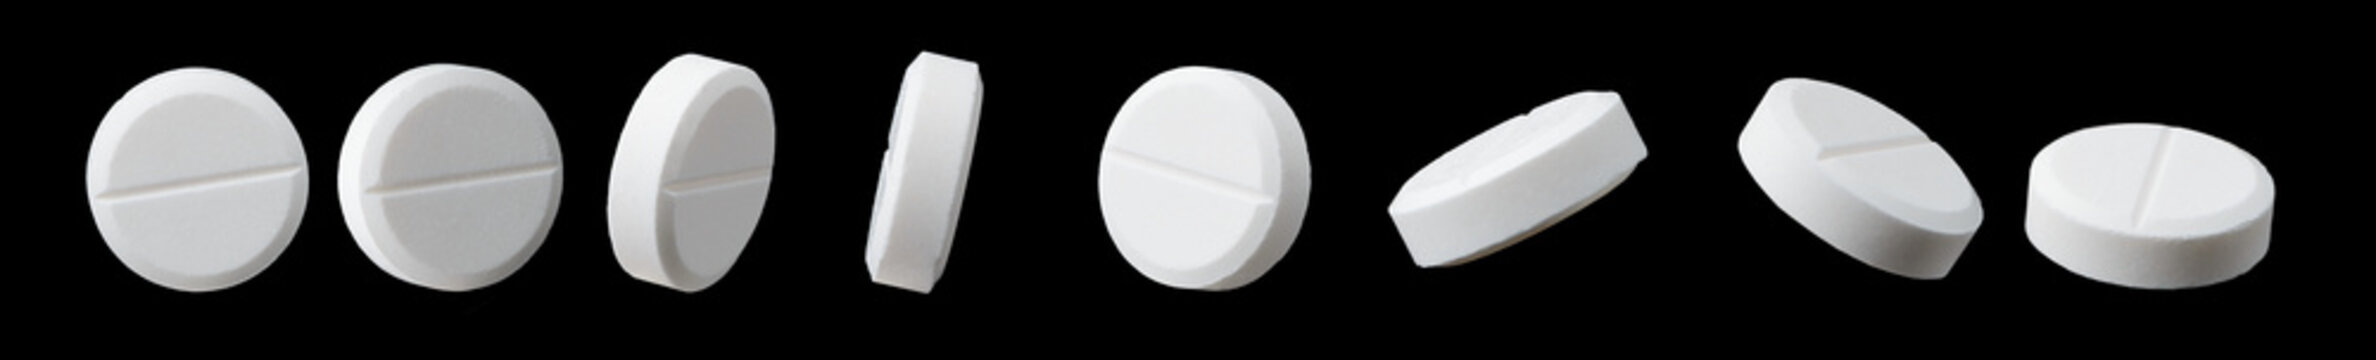 Different angles of white pill